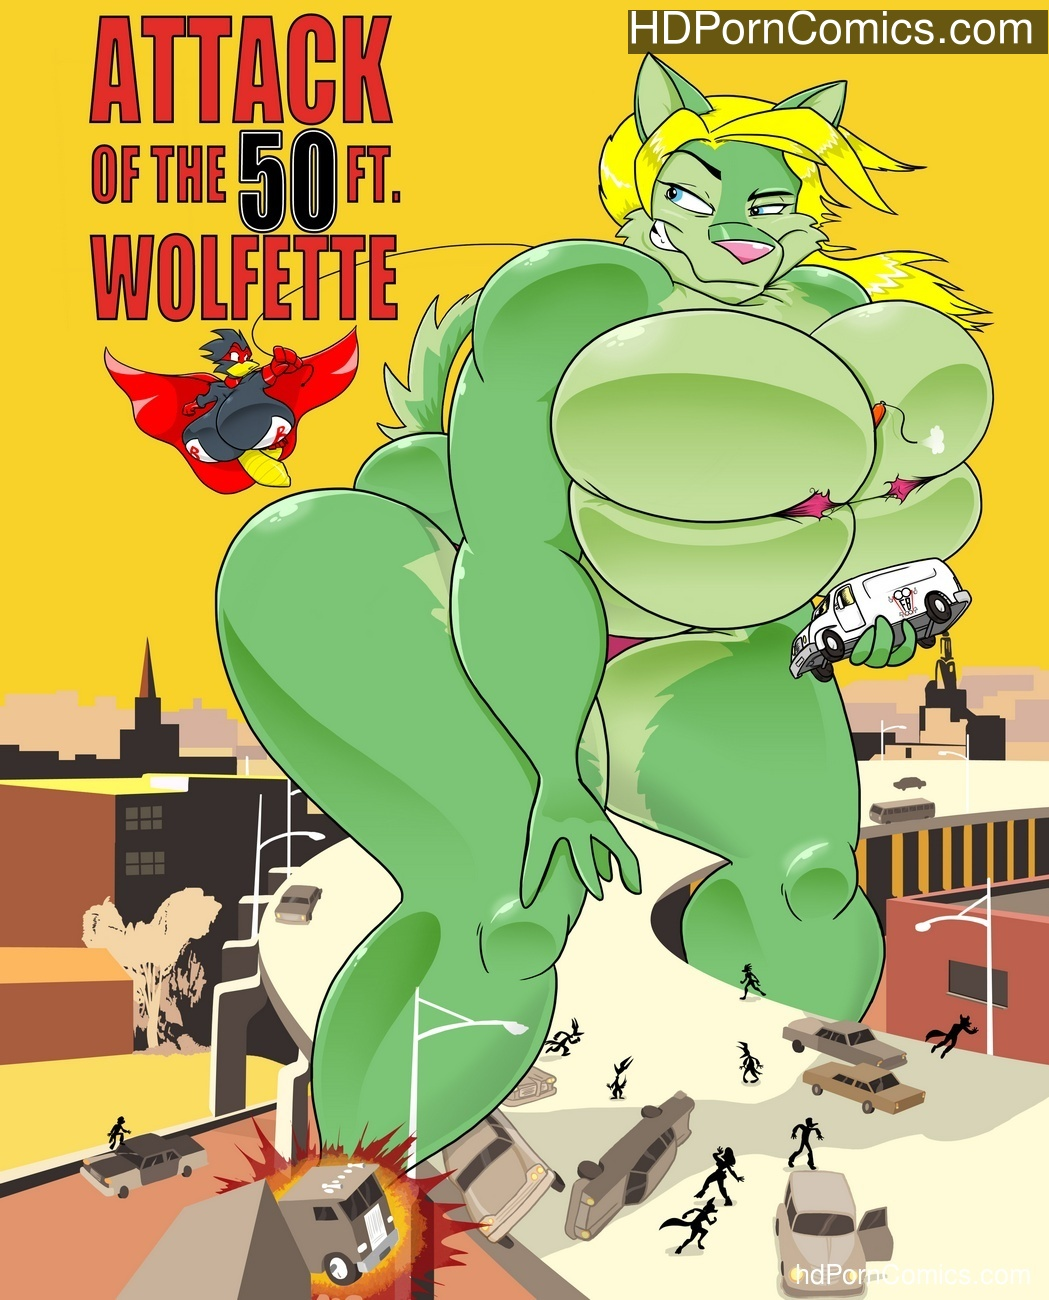 Attack Of The 50ft Wolfette 1 Sex Comic